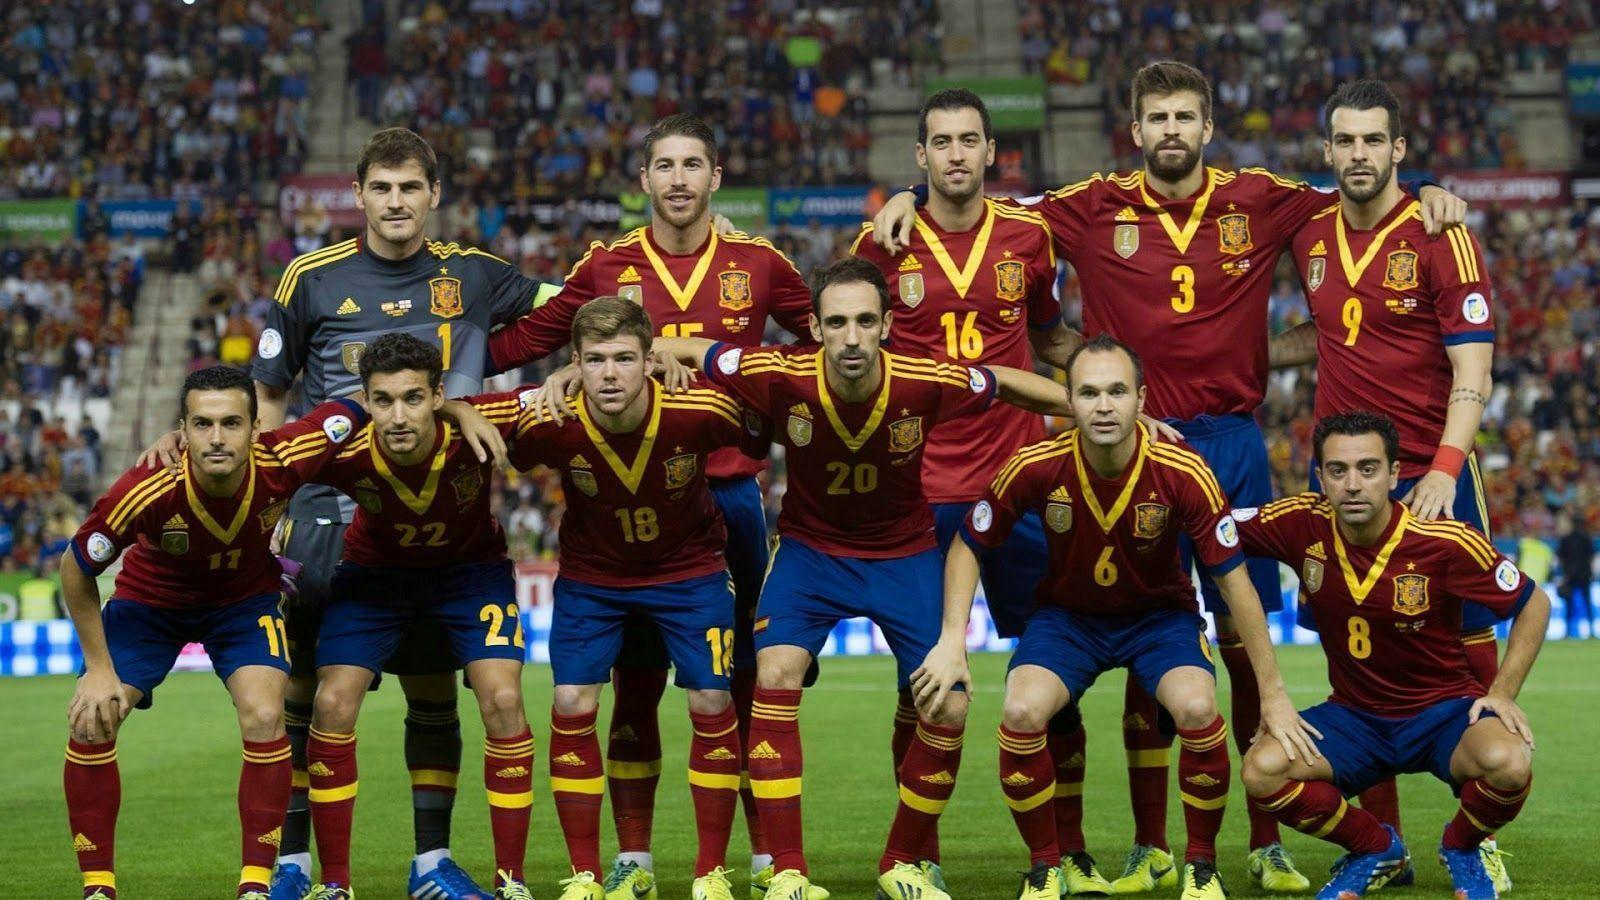 Spain National Team Wallpapers 2015 1600x900